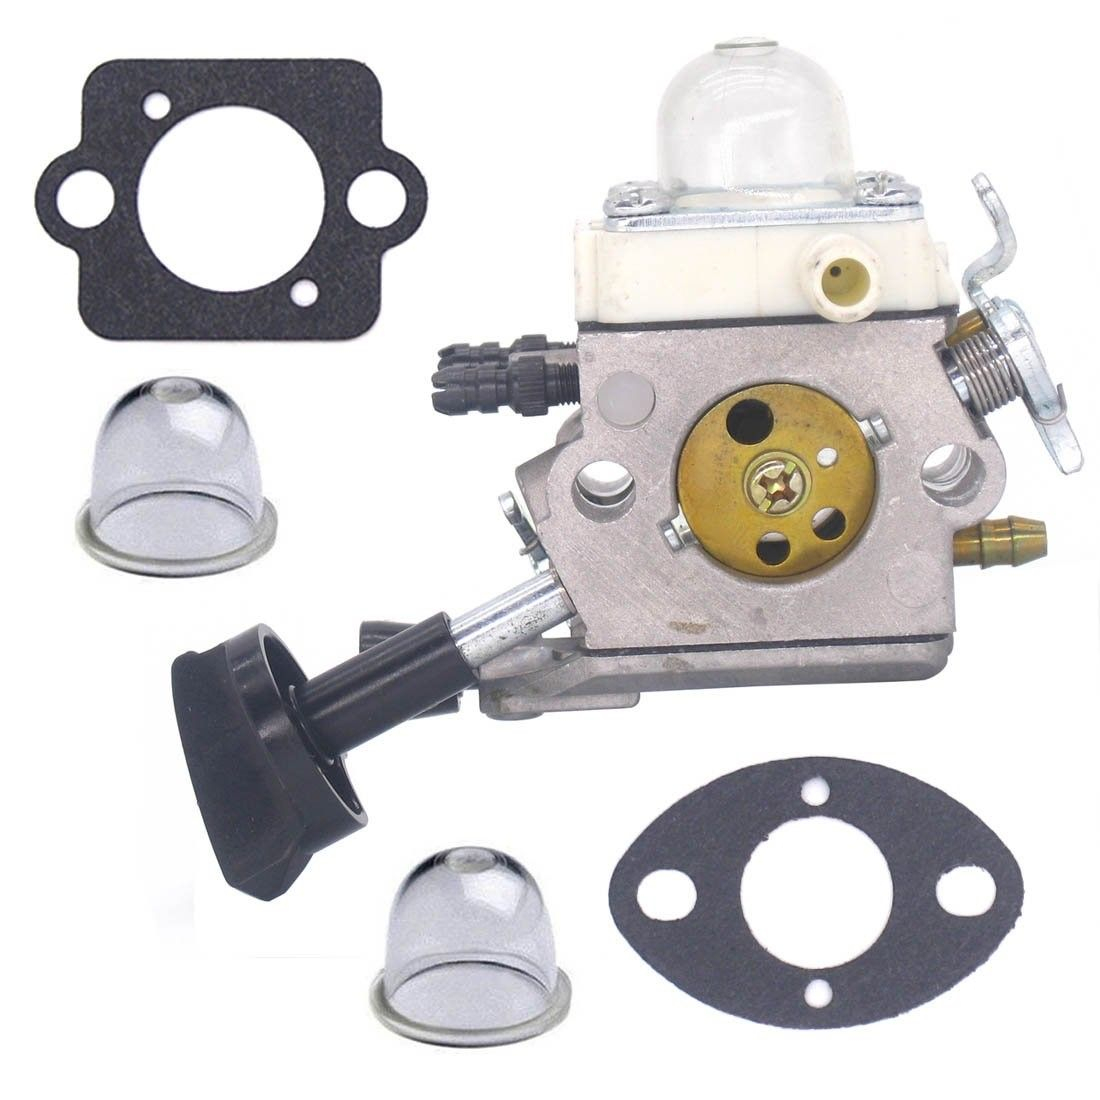 HIPA C1Q-S68 Carburetor with Gasket Spark Plug Fuel Filter Primer Bulb for STIHL BG45 BG46 BG55 BG65 BG85 SH55 SH85 4229 120 0606